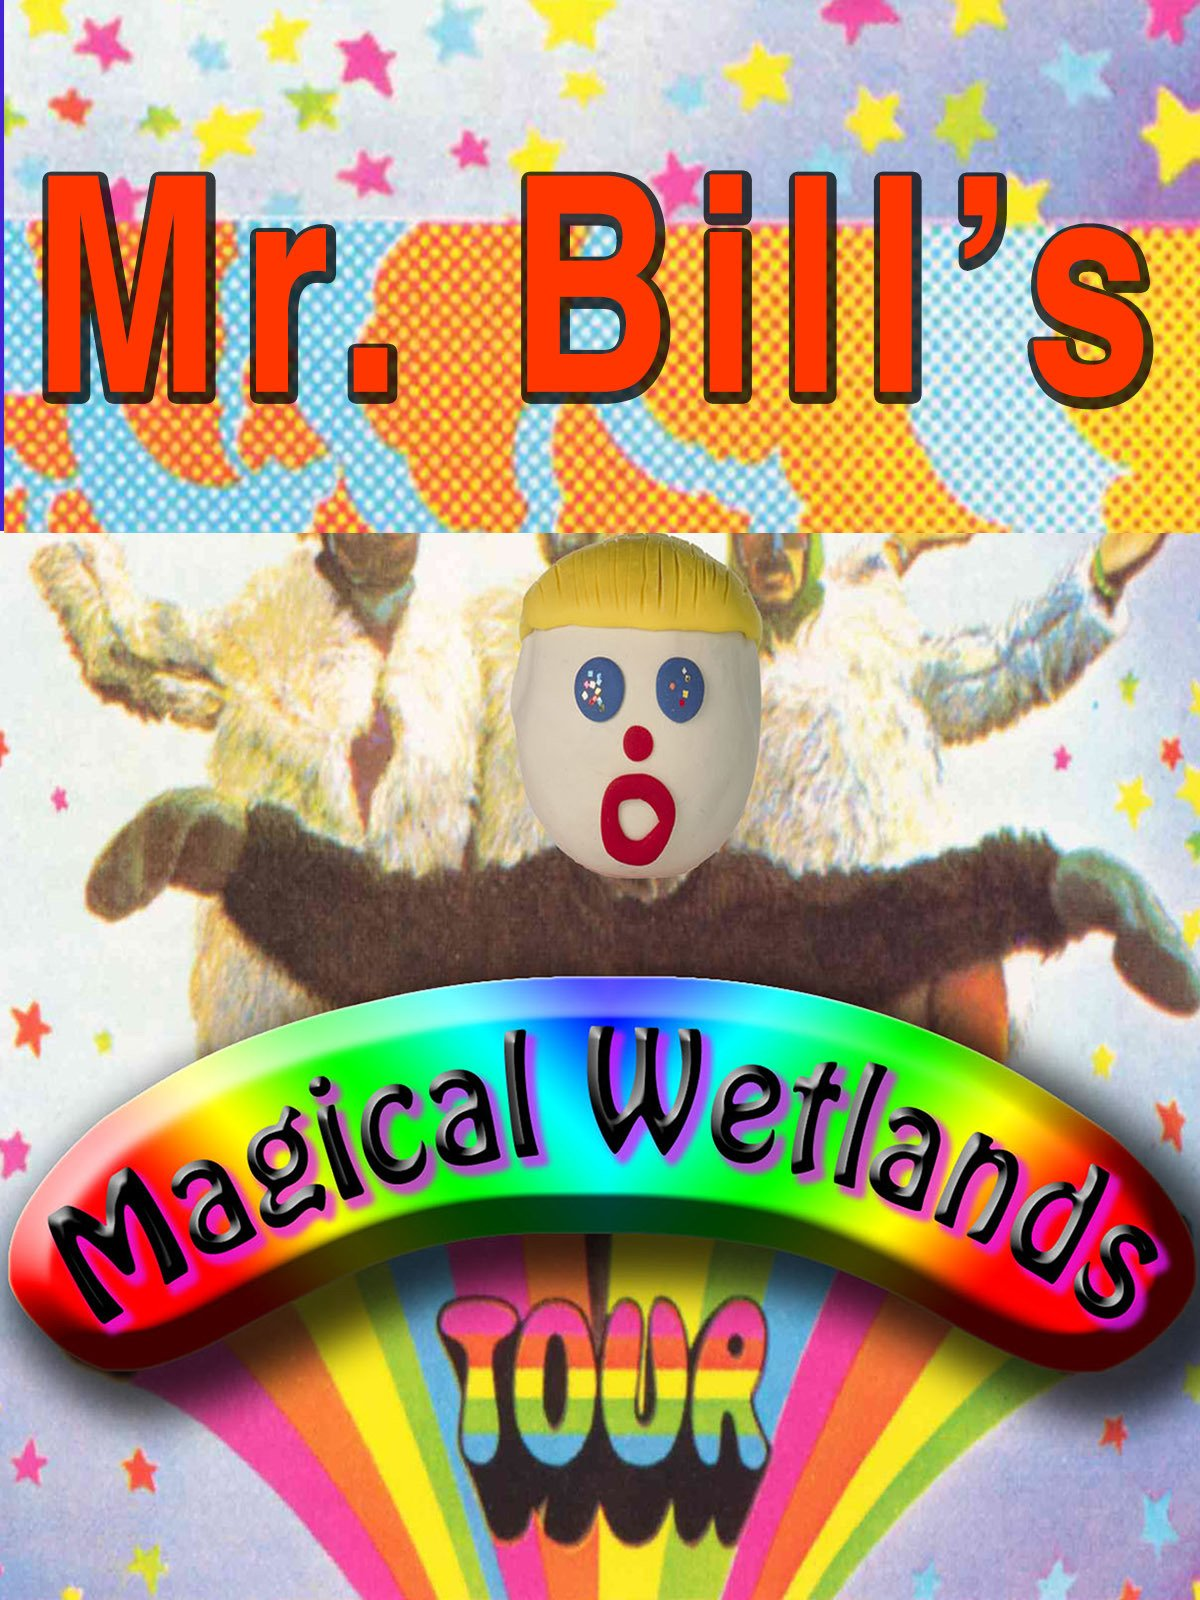 Mr. Bill's Magical Wetlands Tour on Amazon Prime Video UK